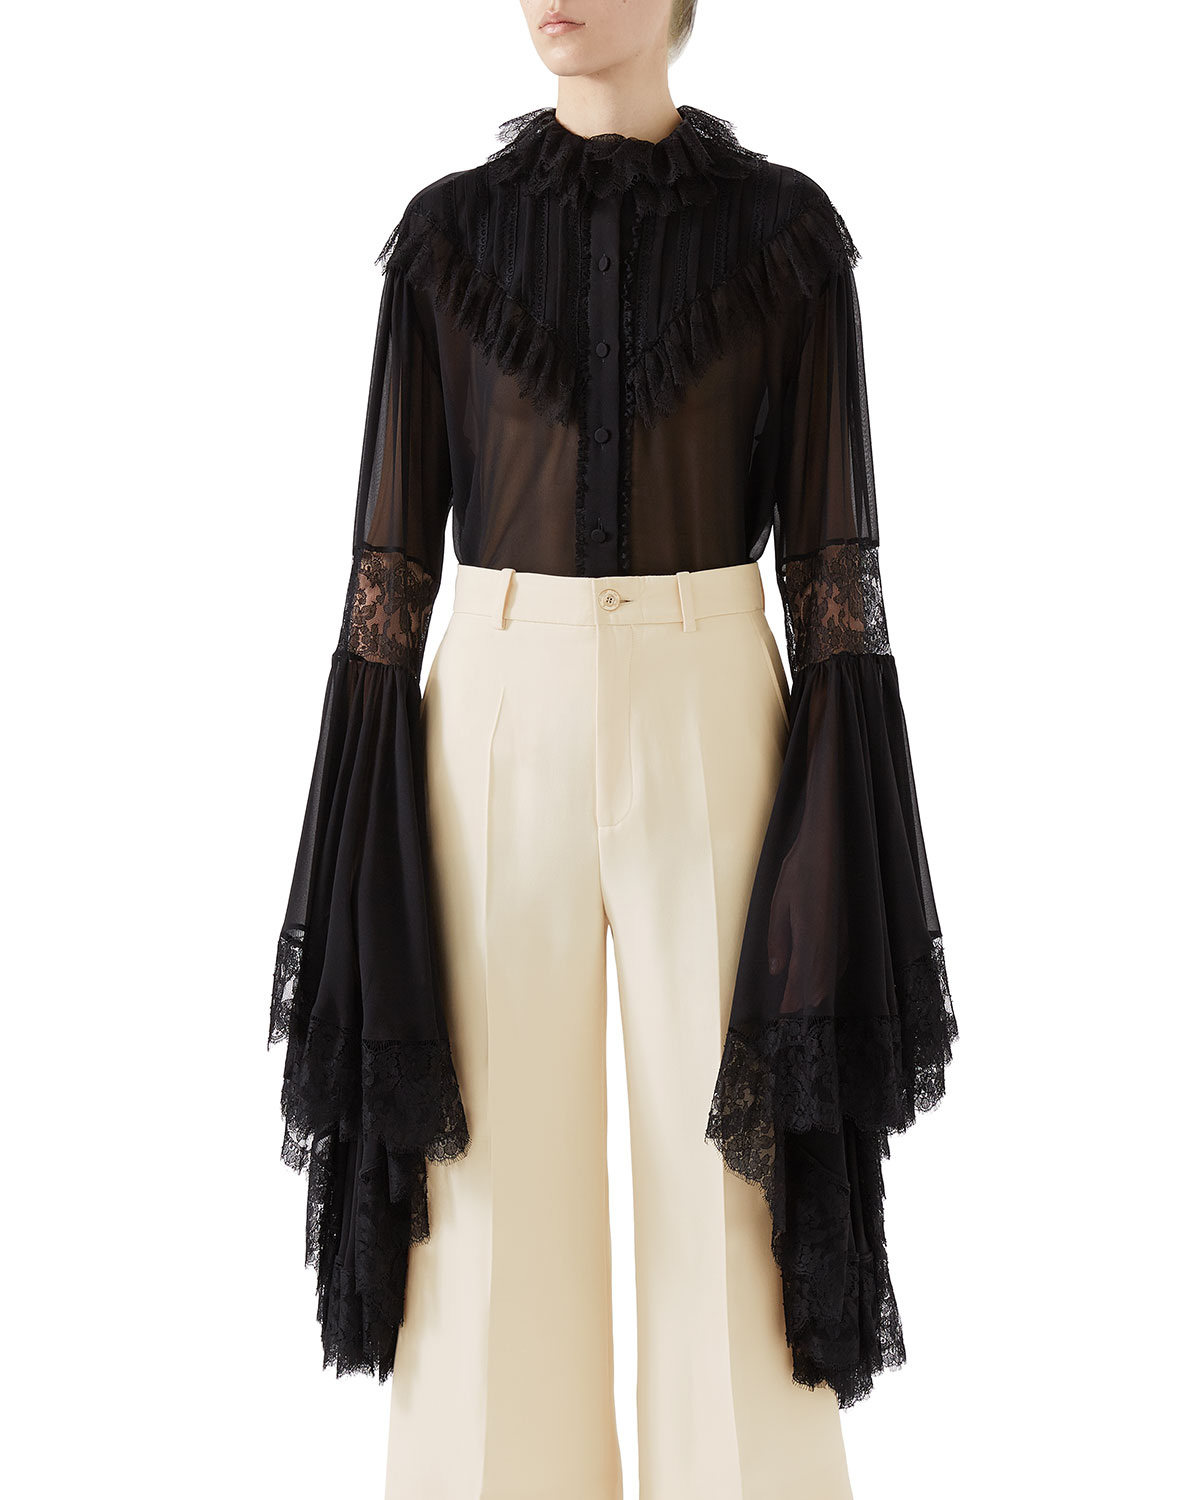 d739aa83 Gucci Silk Georgette & Lace Button-Front Shirt w/ Exaggerated Sleeves